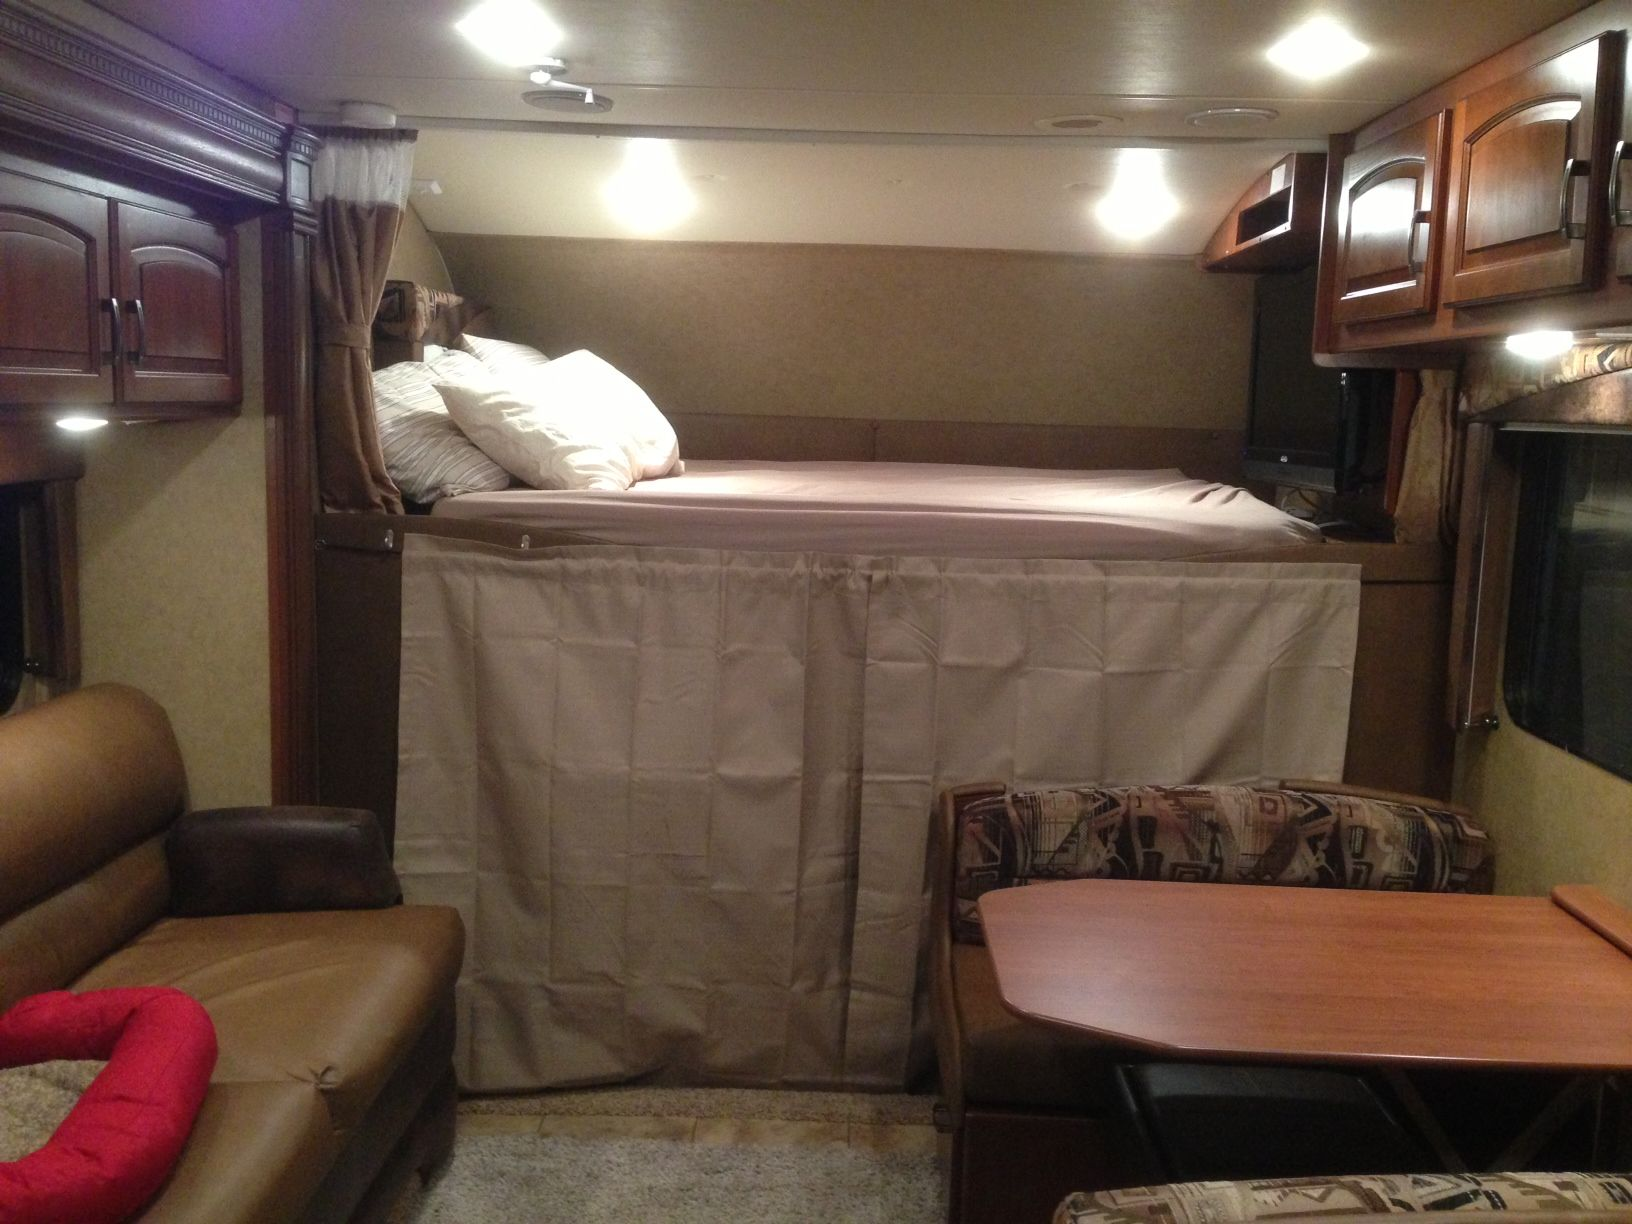 Rv curtains motorhome class a - The Cab Area Of An Rv Can Experience A Lot Of Heat Transfer Making The